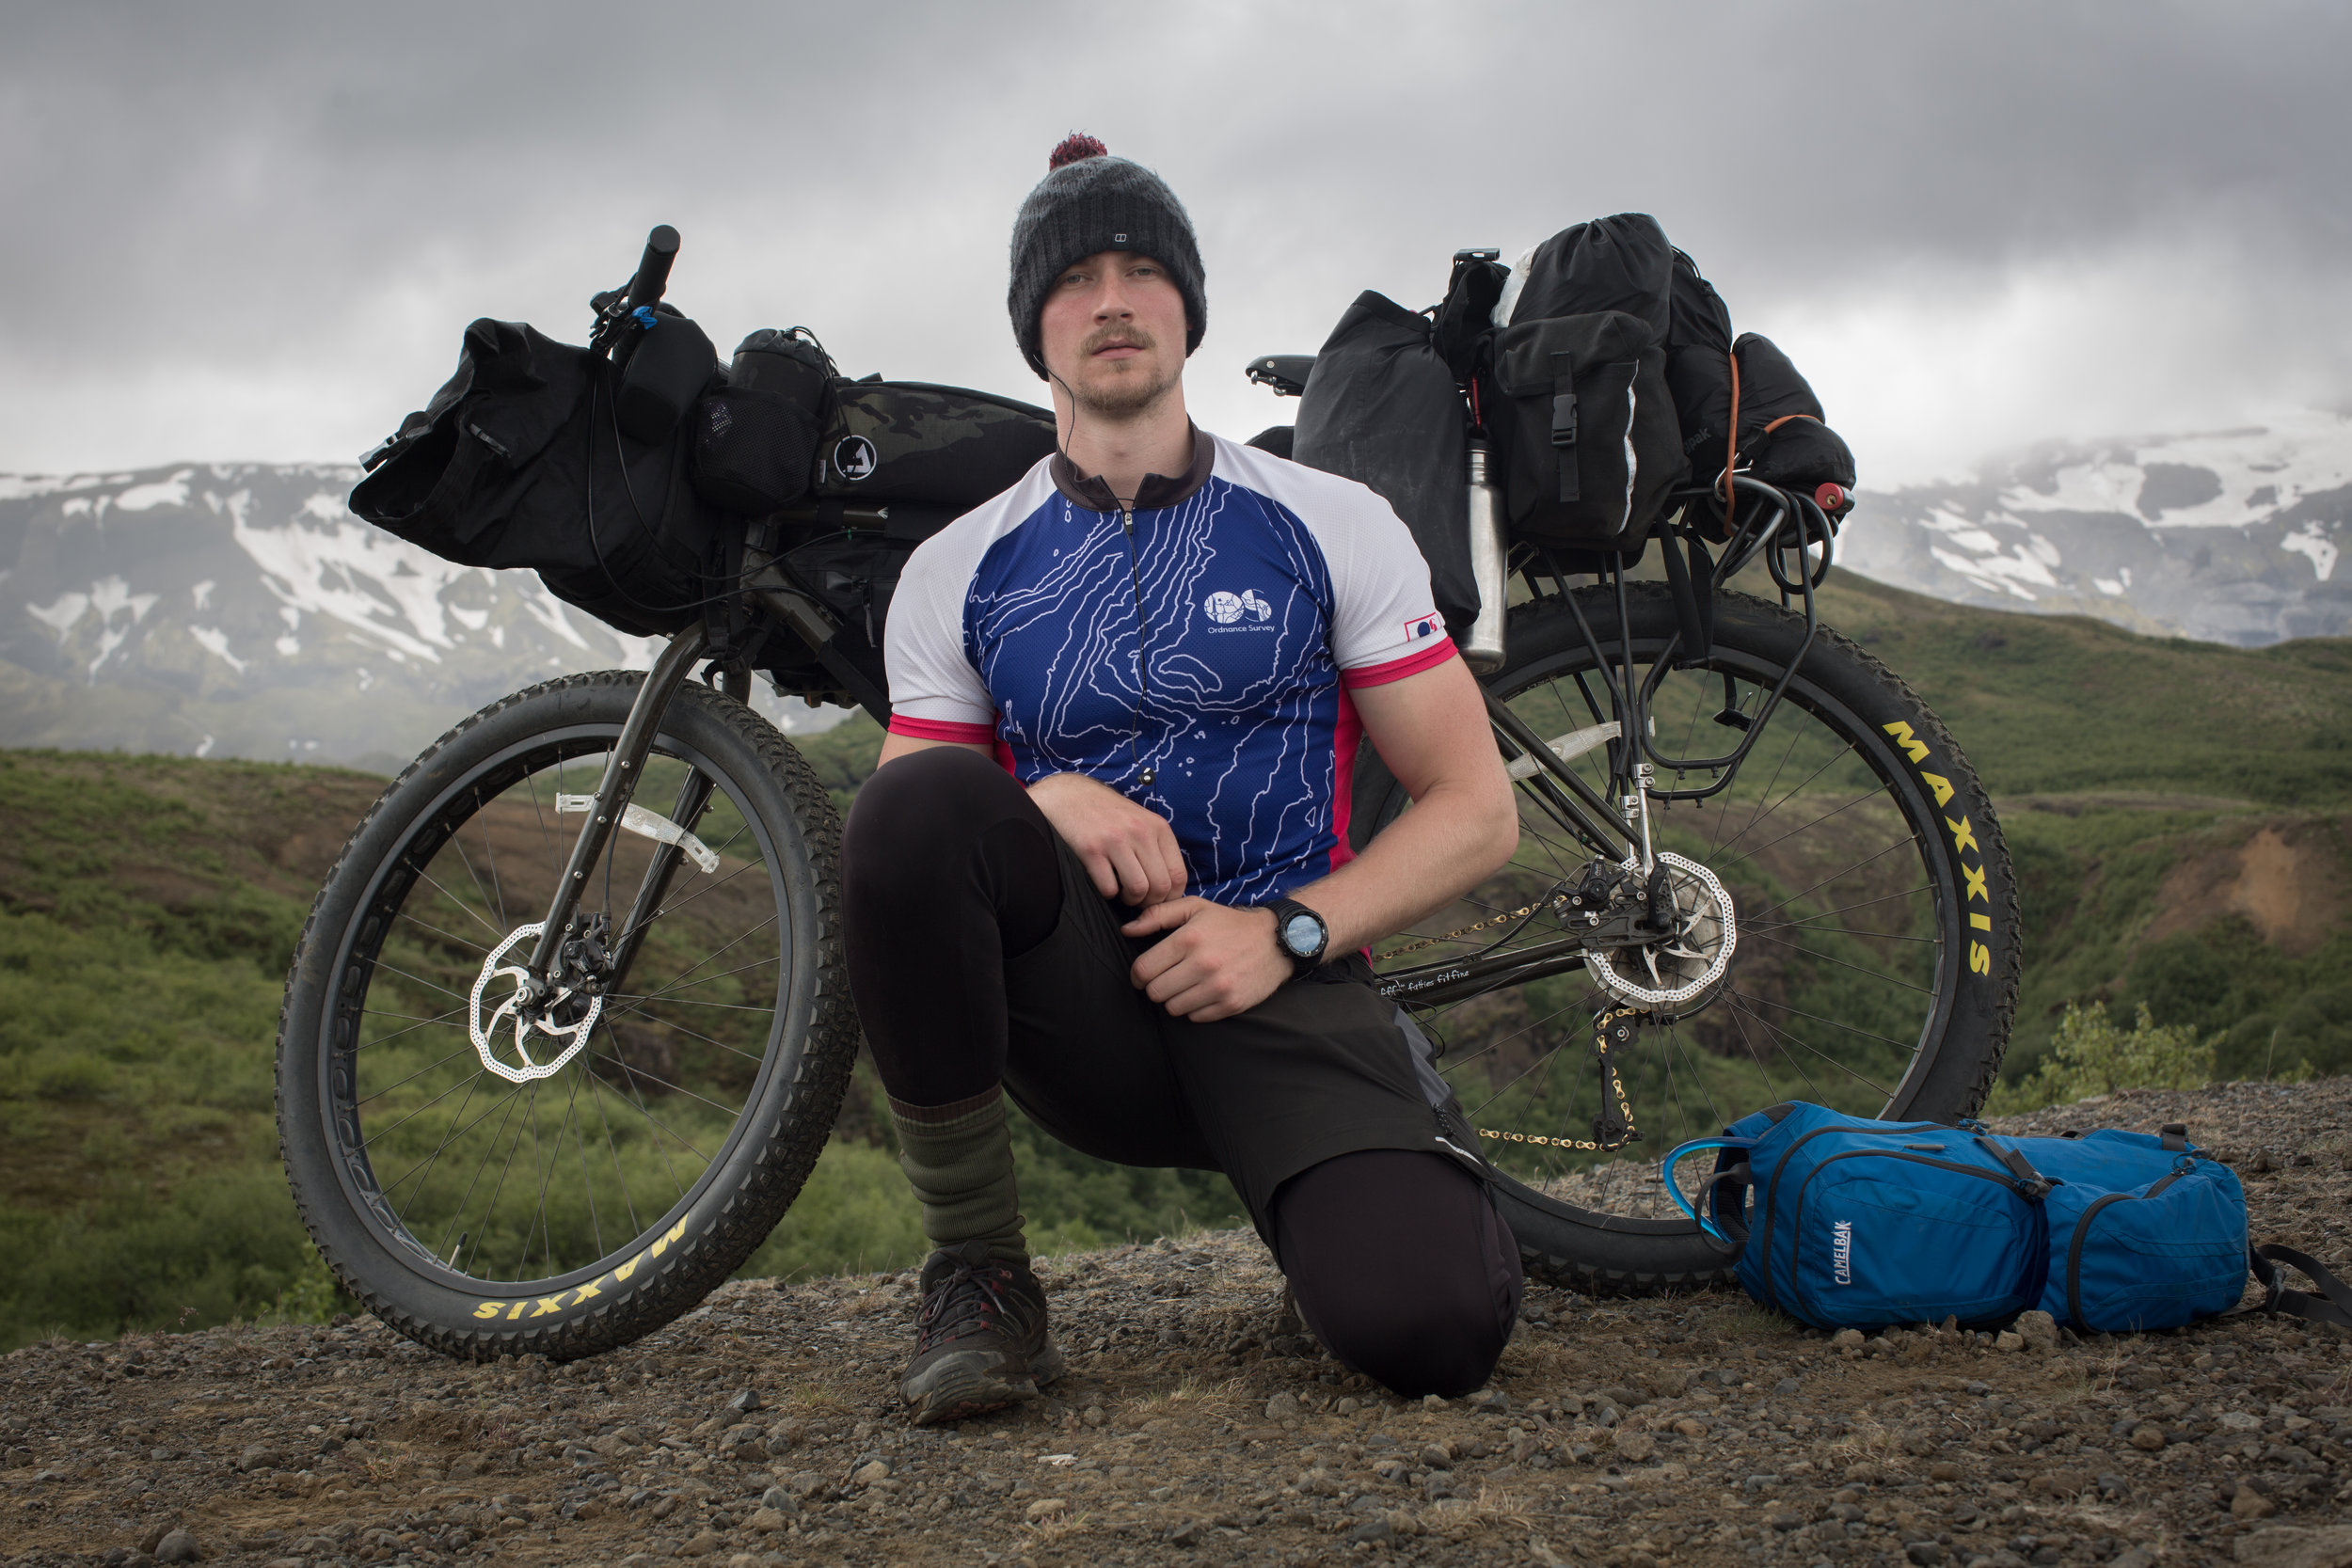 jack mac, jack macgowan, bicycle touring apocalypse, cycling, mtb, ride, travel, explore more, adventure, bike blog, surly, surly bikes, surly ecr, ordnance survey, ordnance, berghaus, blacks outdoors, kodak, leica, canon, canon 5d mkiii,